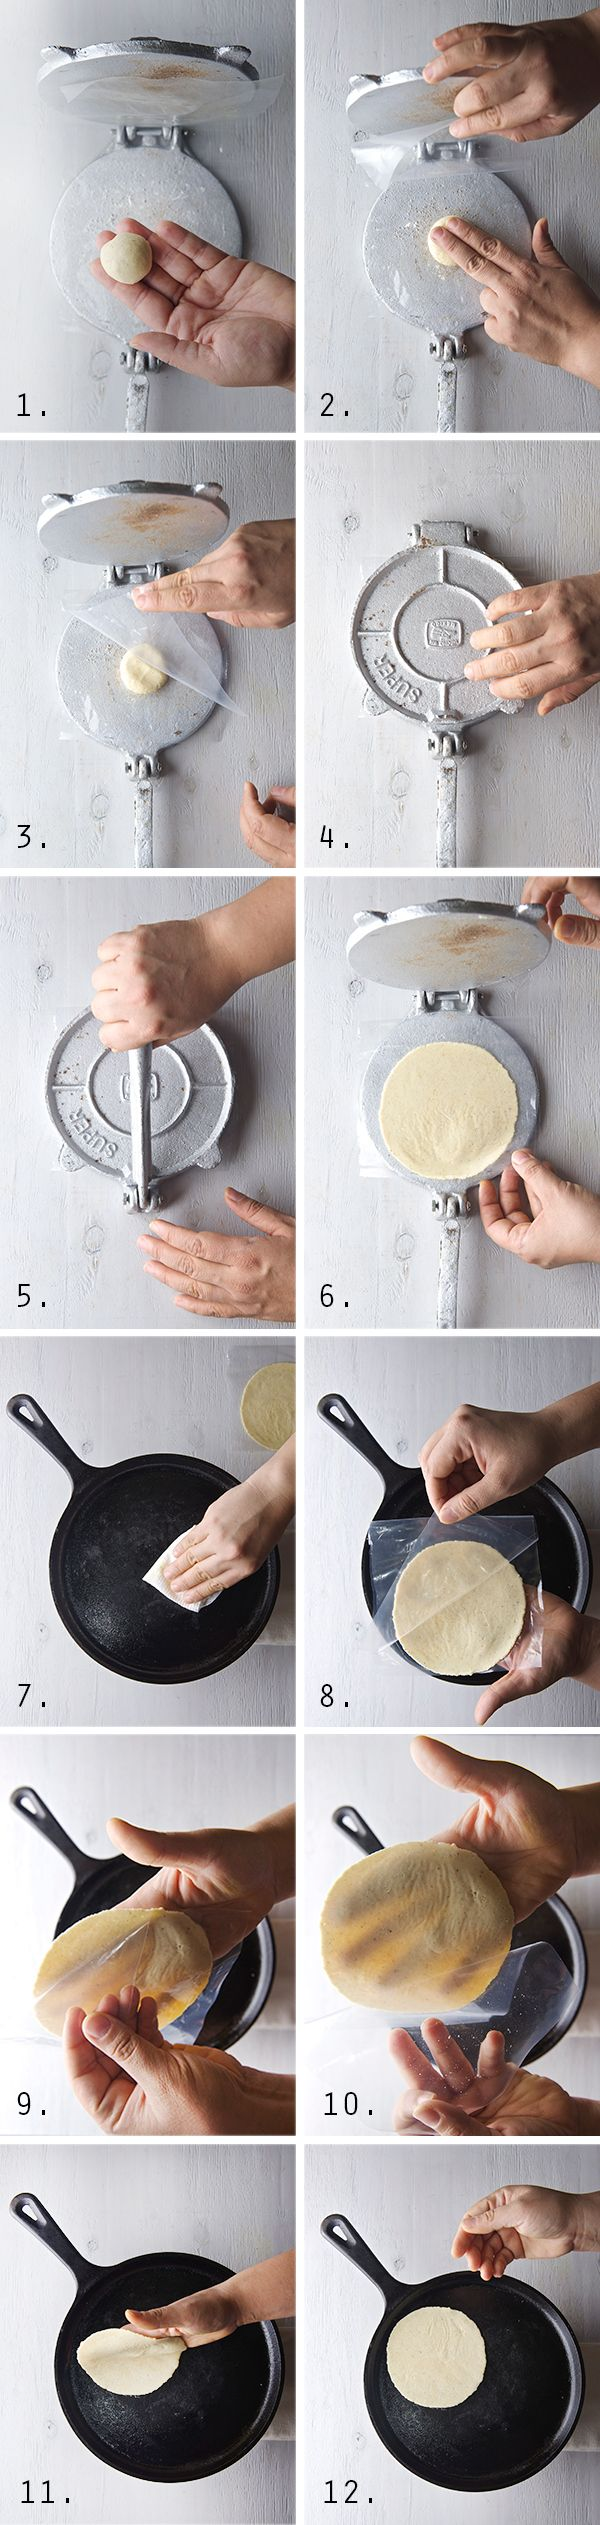 Making-Handmade-Corn-tortillas-easy-Step-by-step_Yes,-more-please!